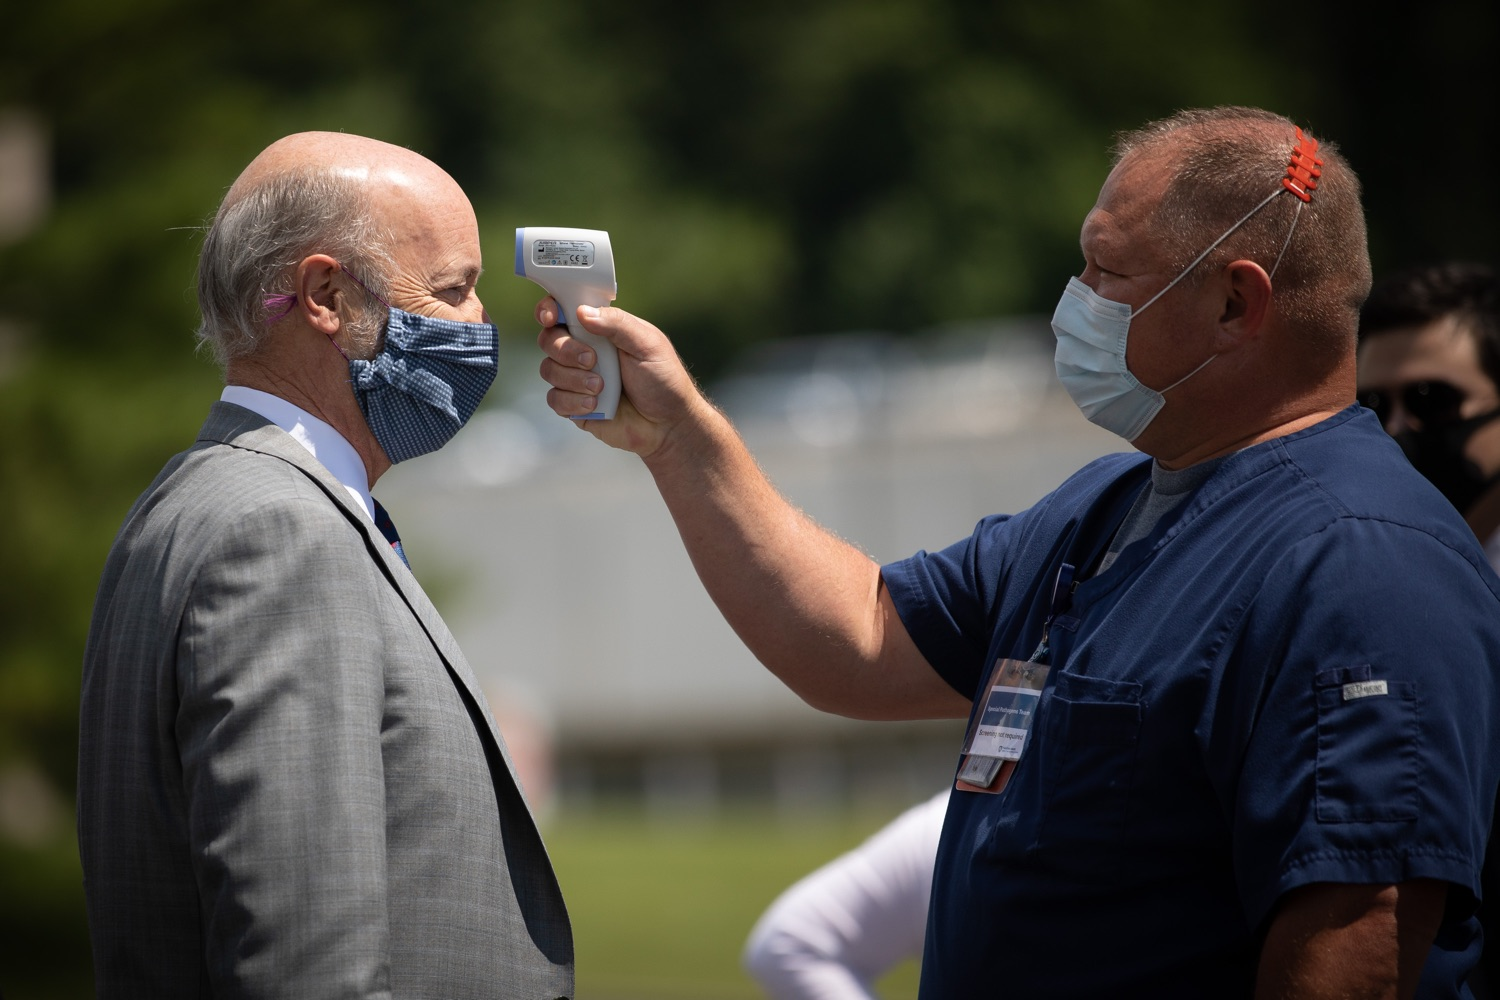 "<a href=""https://filesource.wostreaming.net/commonwealthofpa/photo/18093_gov-healthcare_workers_dz_05.jpg"" target=""_blank"">⇣ Download Photo<br></a>Pennsylvania Governor Tom Wolf getting his temperature checked before his visit to Milton S. Hershey Medical Center. As the commonwealth continues its measured, phased reopening and COVID-19 case counts continue to decline, Governor Tom Wolf visited Penn State Milton S. Hershey Medical Center today to thank staff and learn more about how the facility is handling the pandemic and preparing for a possible resurgence in the fall.  Harrisburg, PA  June 24, 2020"